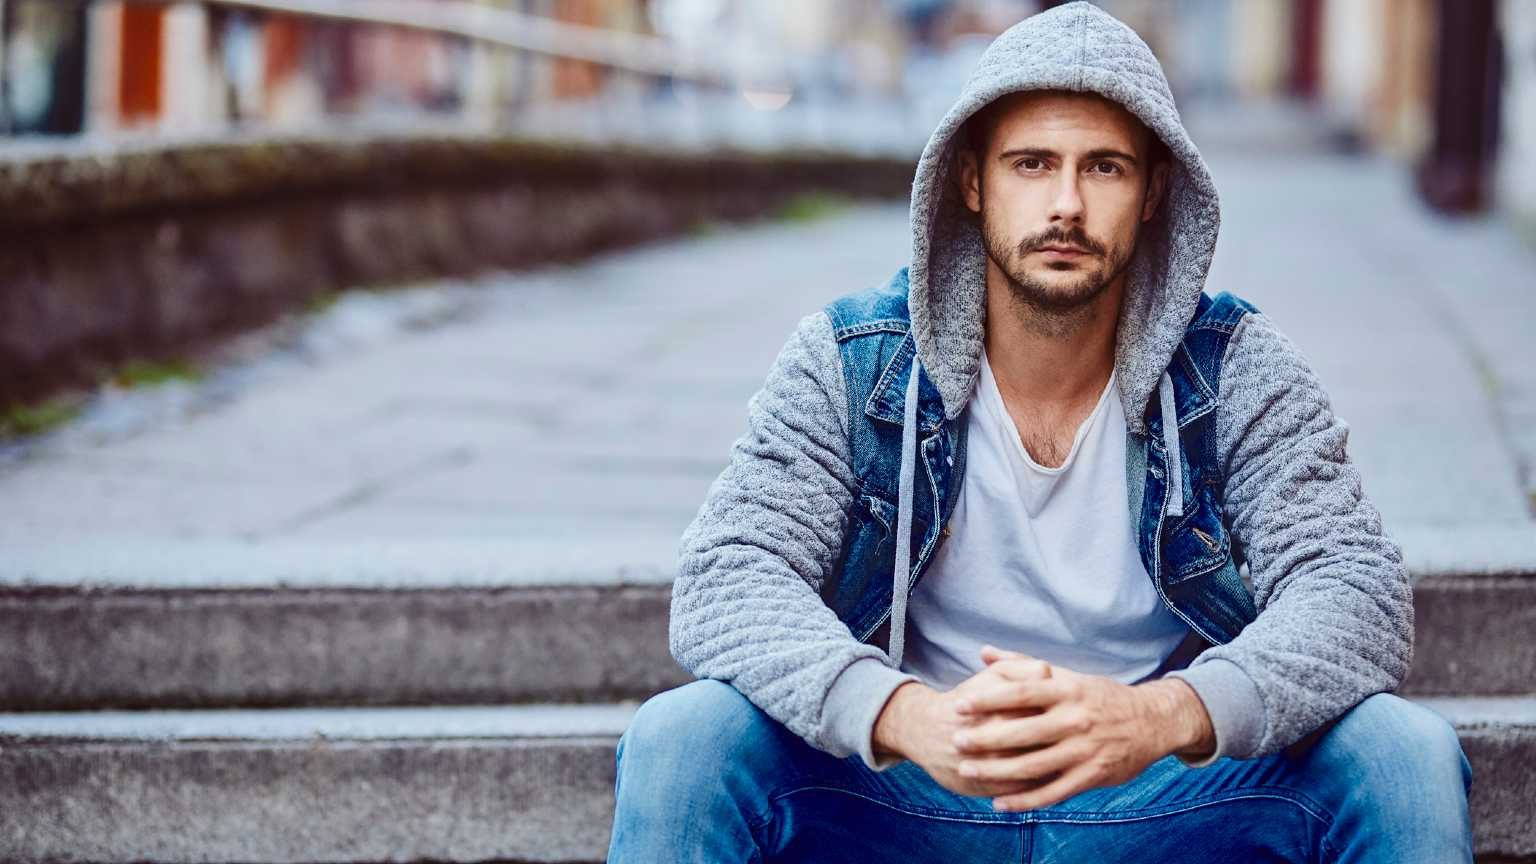 Serious man in hooded jacket sitting on stairs